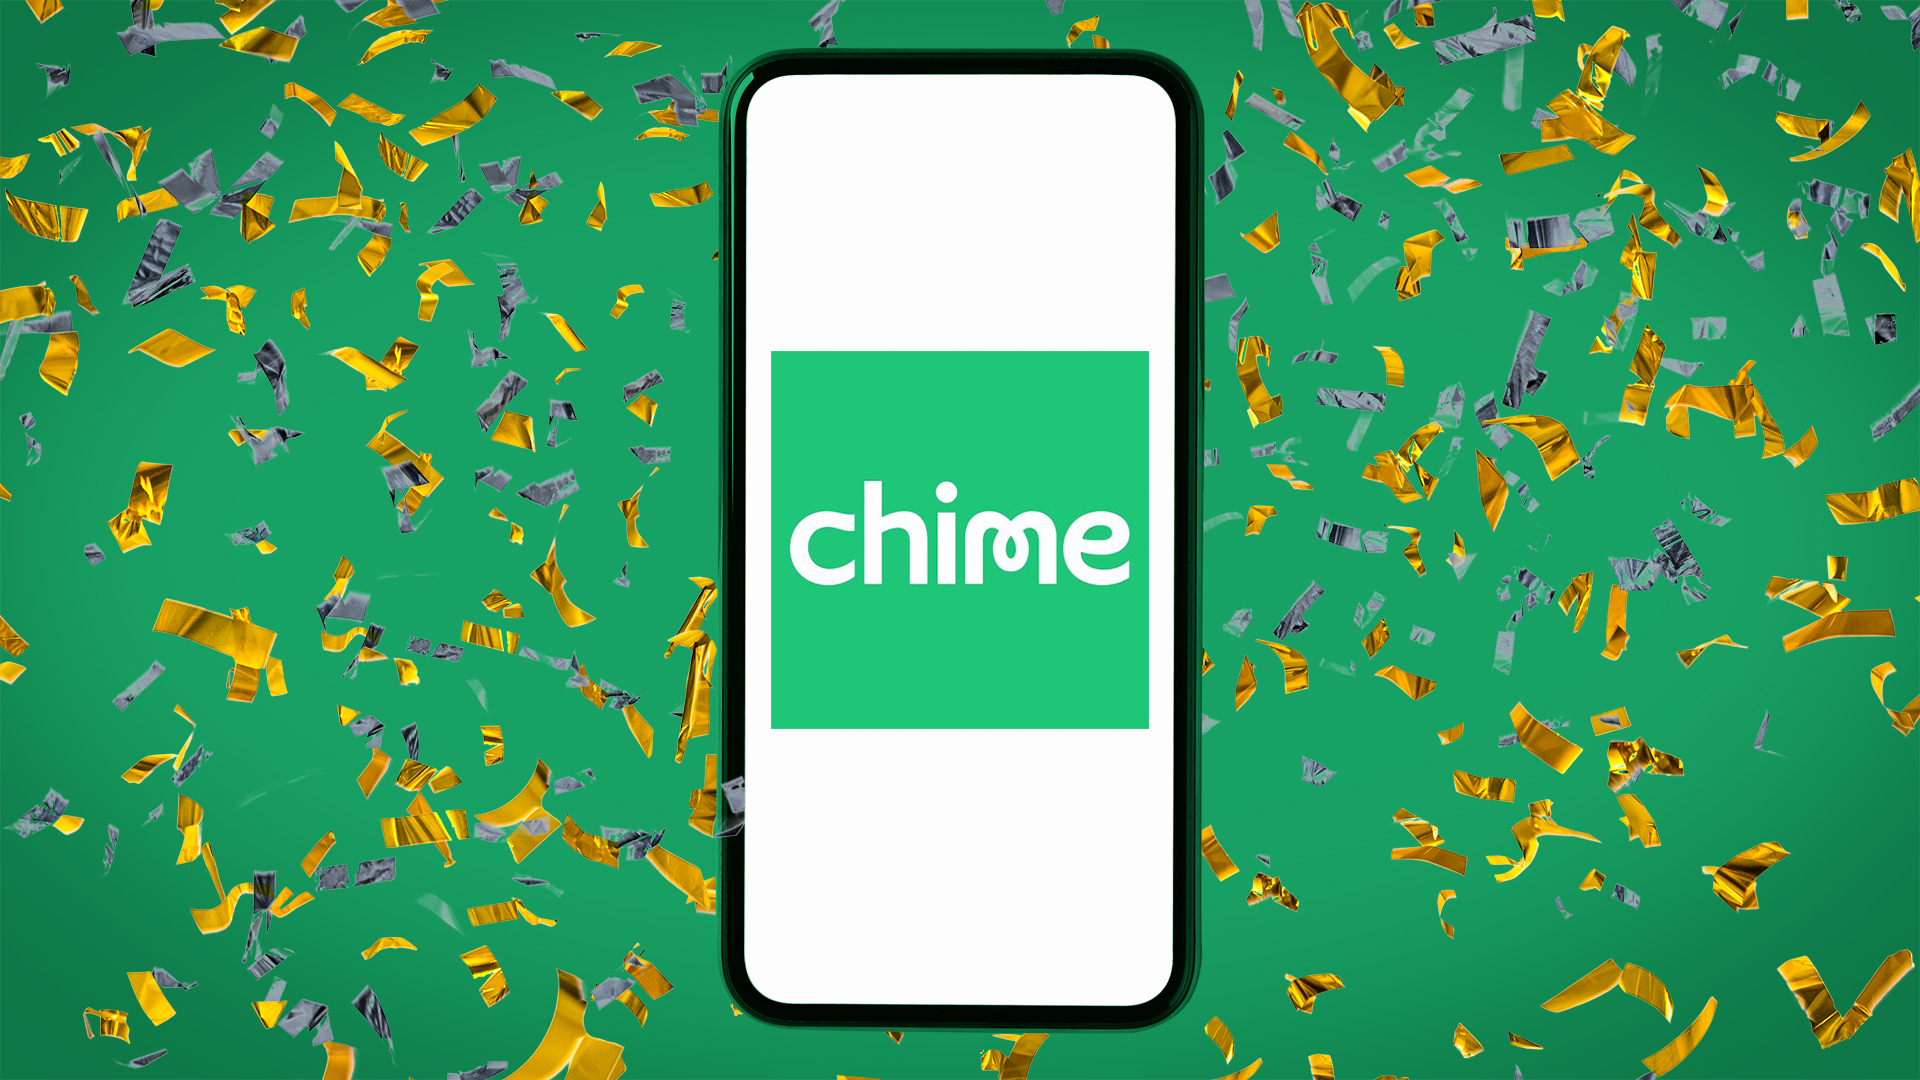 Chime bank promotion